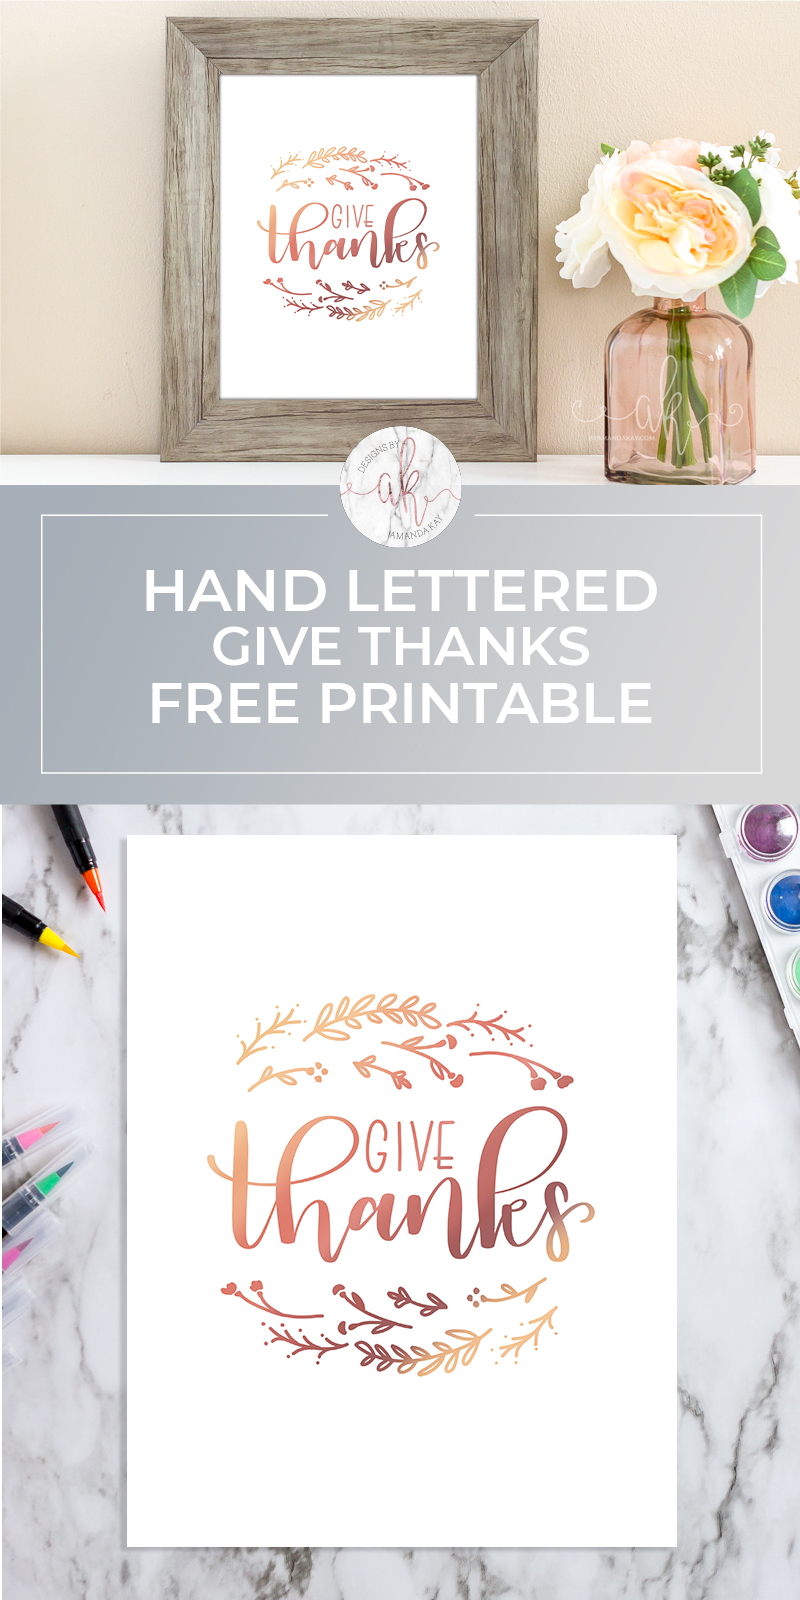 The season of giving thanks is upon us, and what better way to remember to be thankful than this adorable hand lettered give thanks free printable?